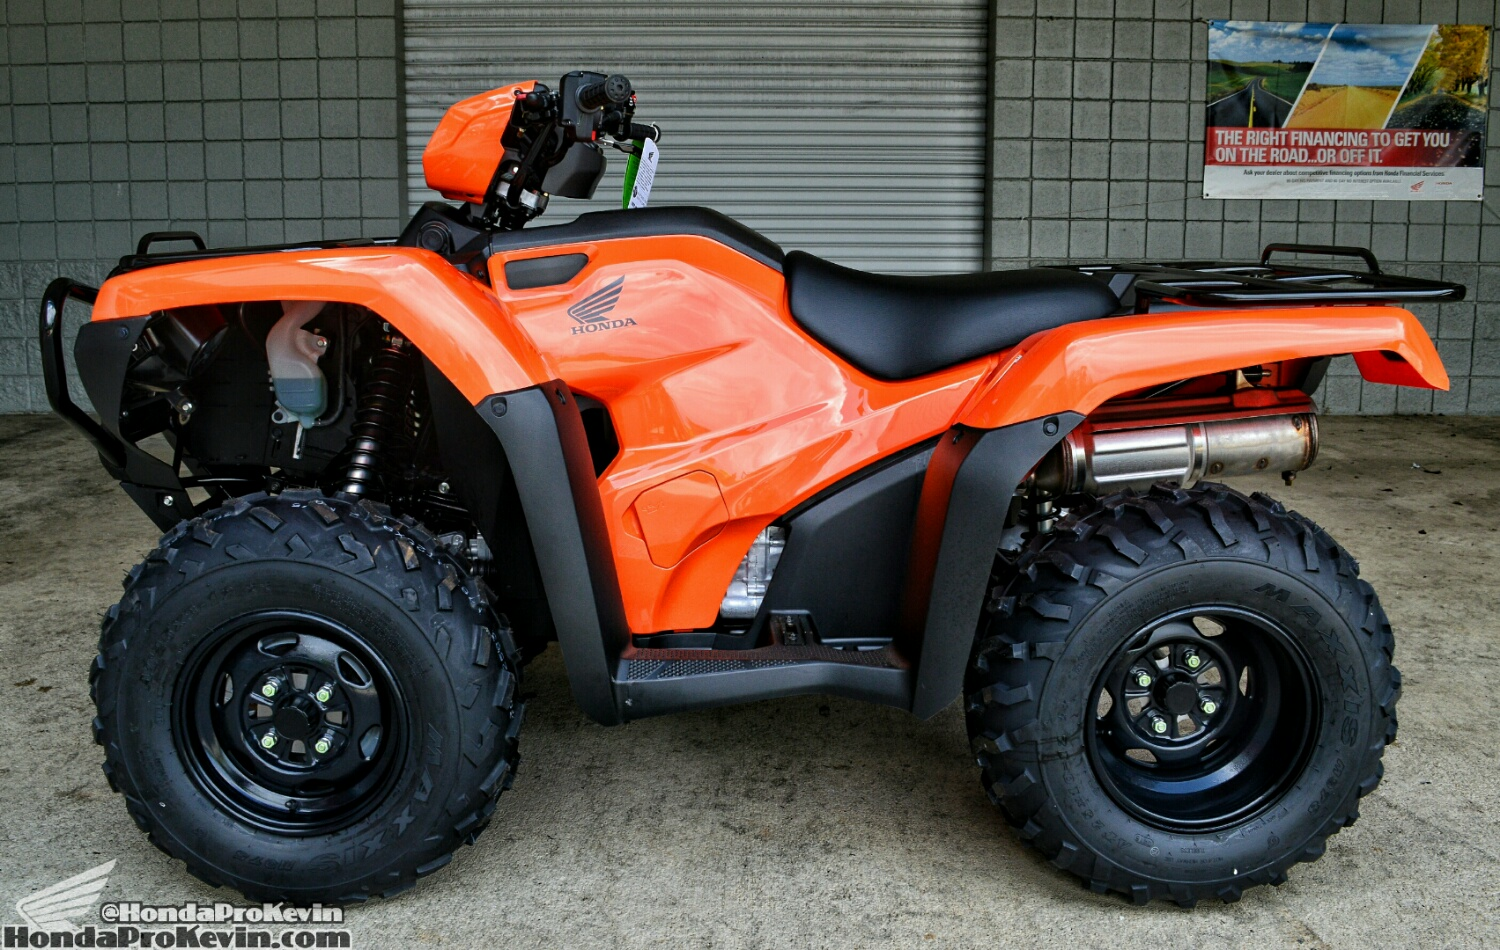 2018 Honda FourTrax Foreman 500 ATV Review / Specs - Horsepower / Price / Four Wheeler / 4x4 Quad - TRX500